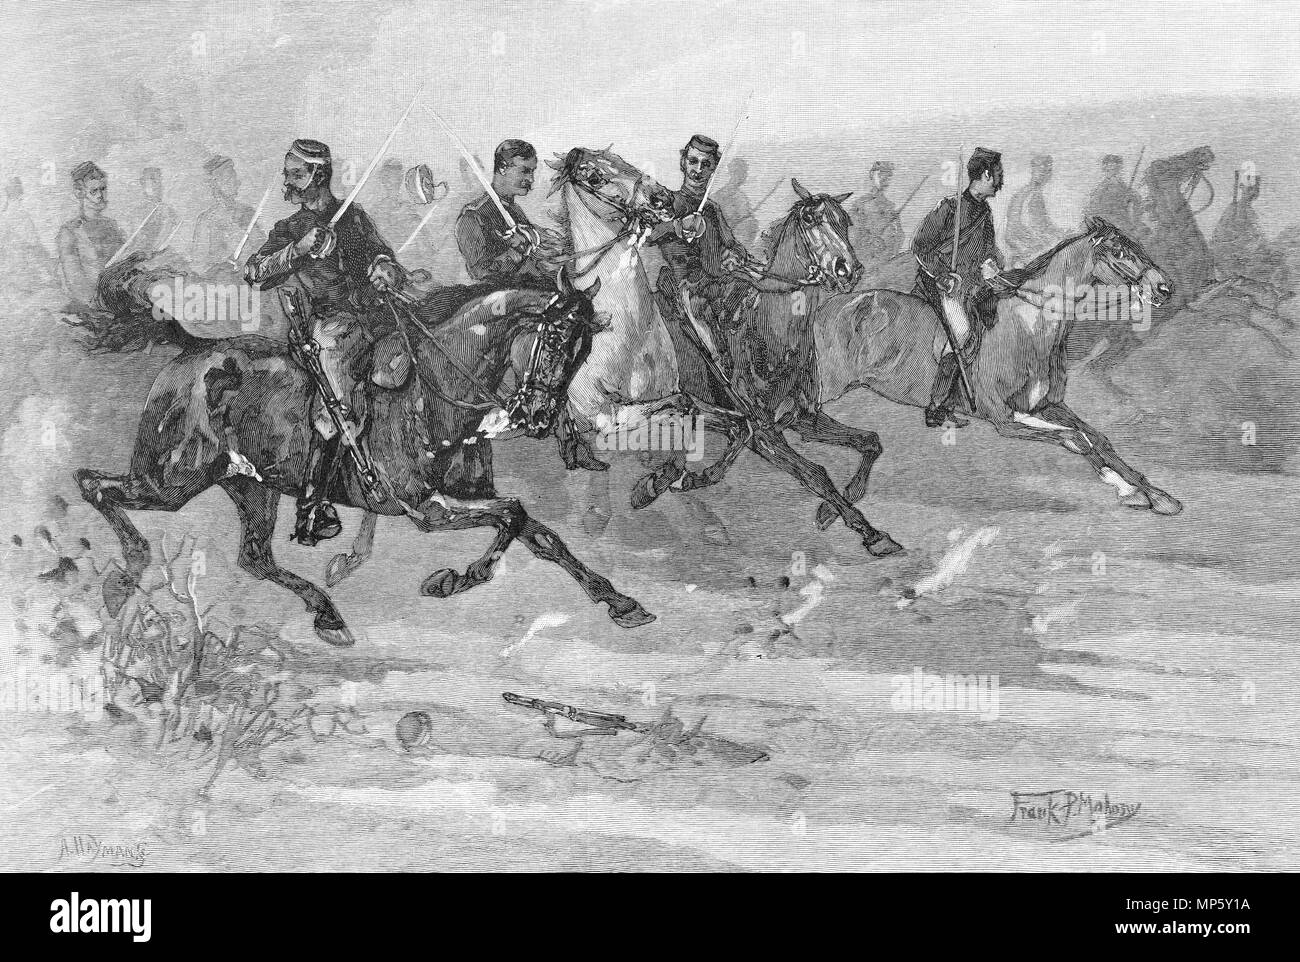 Engraving of the Charge of the New Zealand Cavalry at the Battle of Orakau. From the Picturesque Atlas of Australasia Vol 3, 1886 - Stock Image